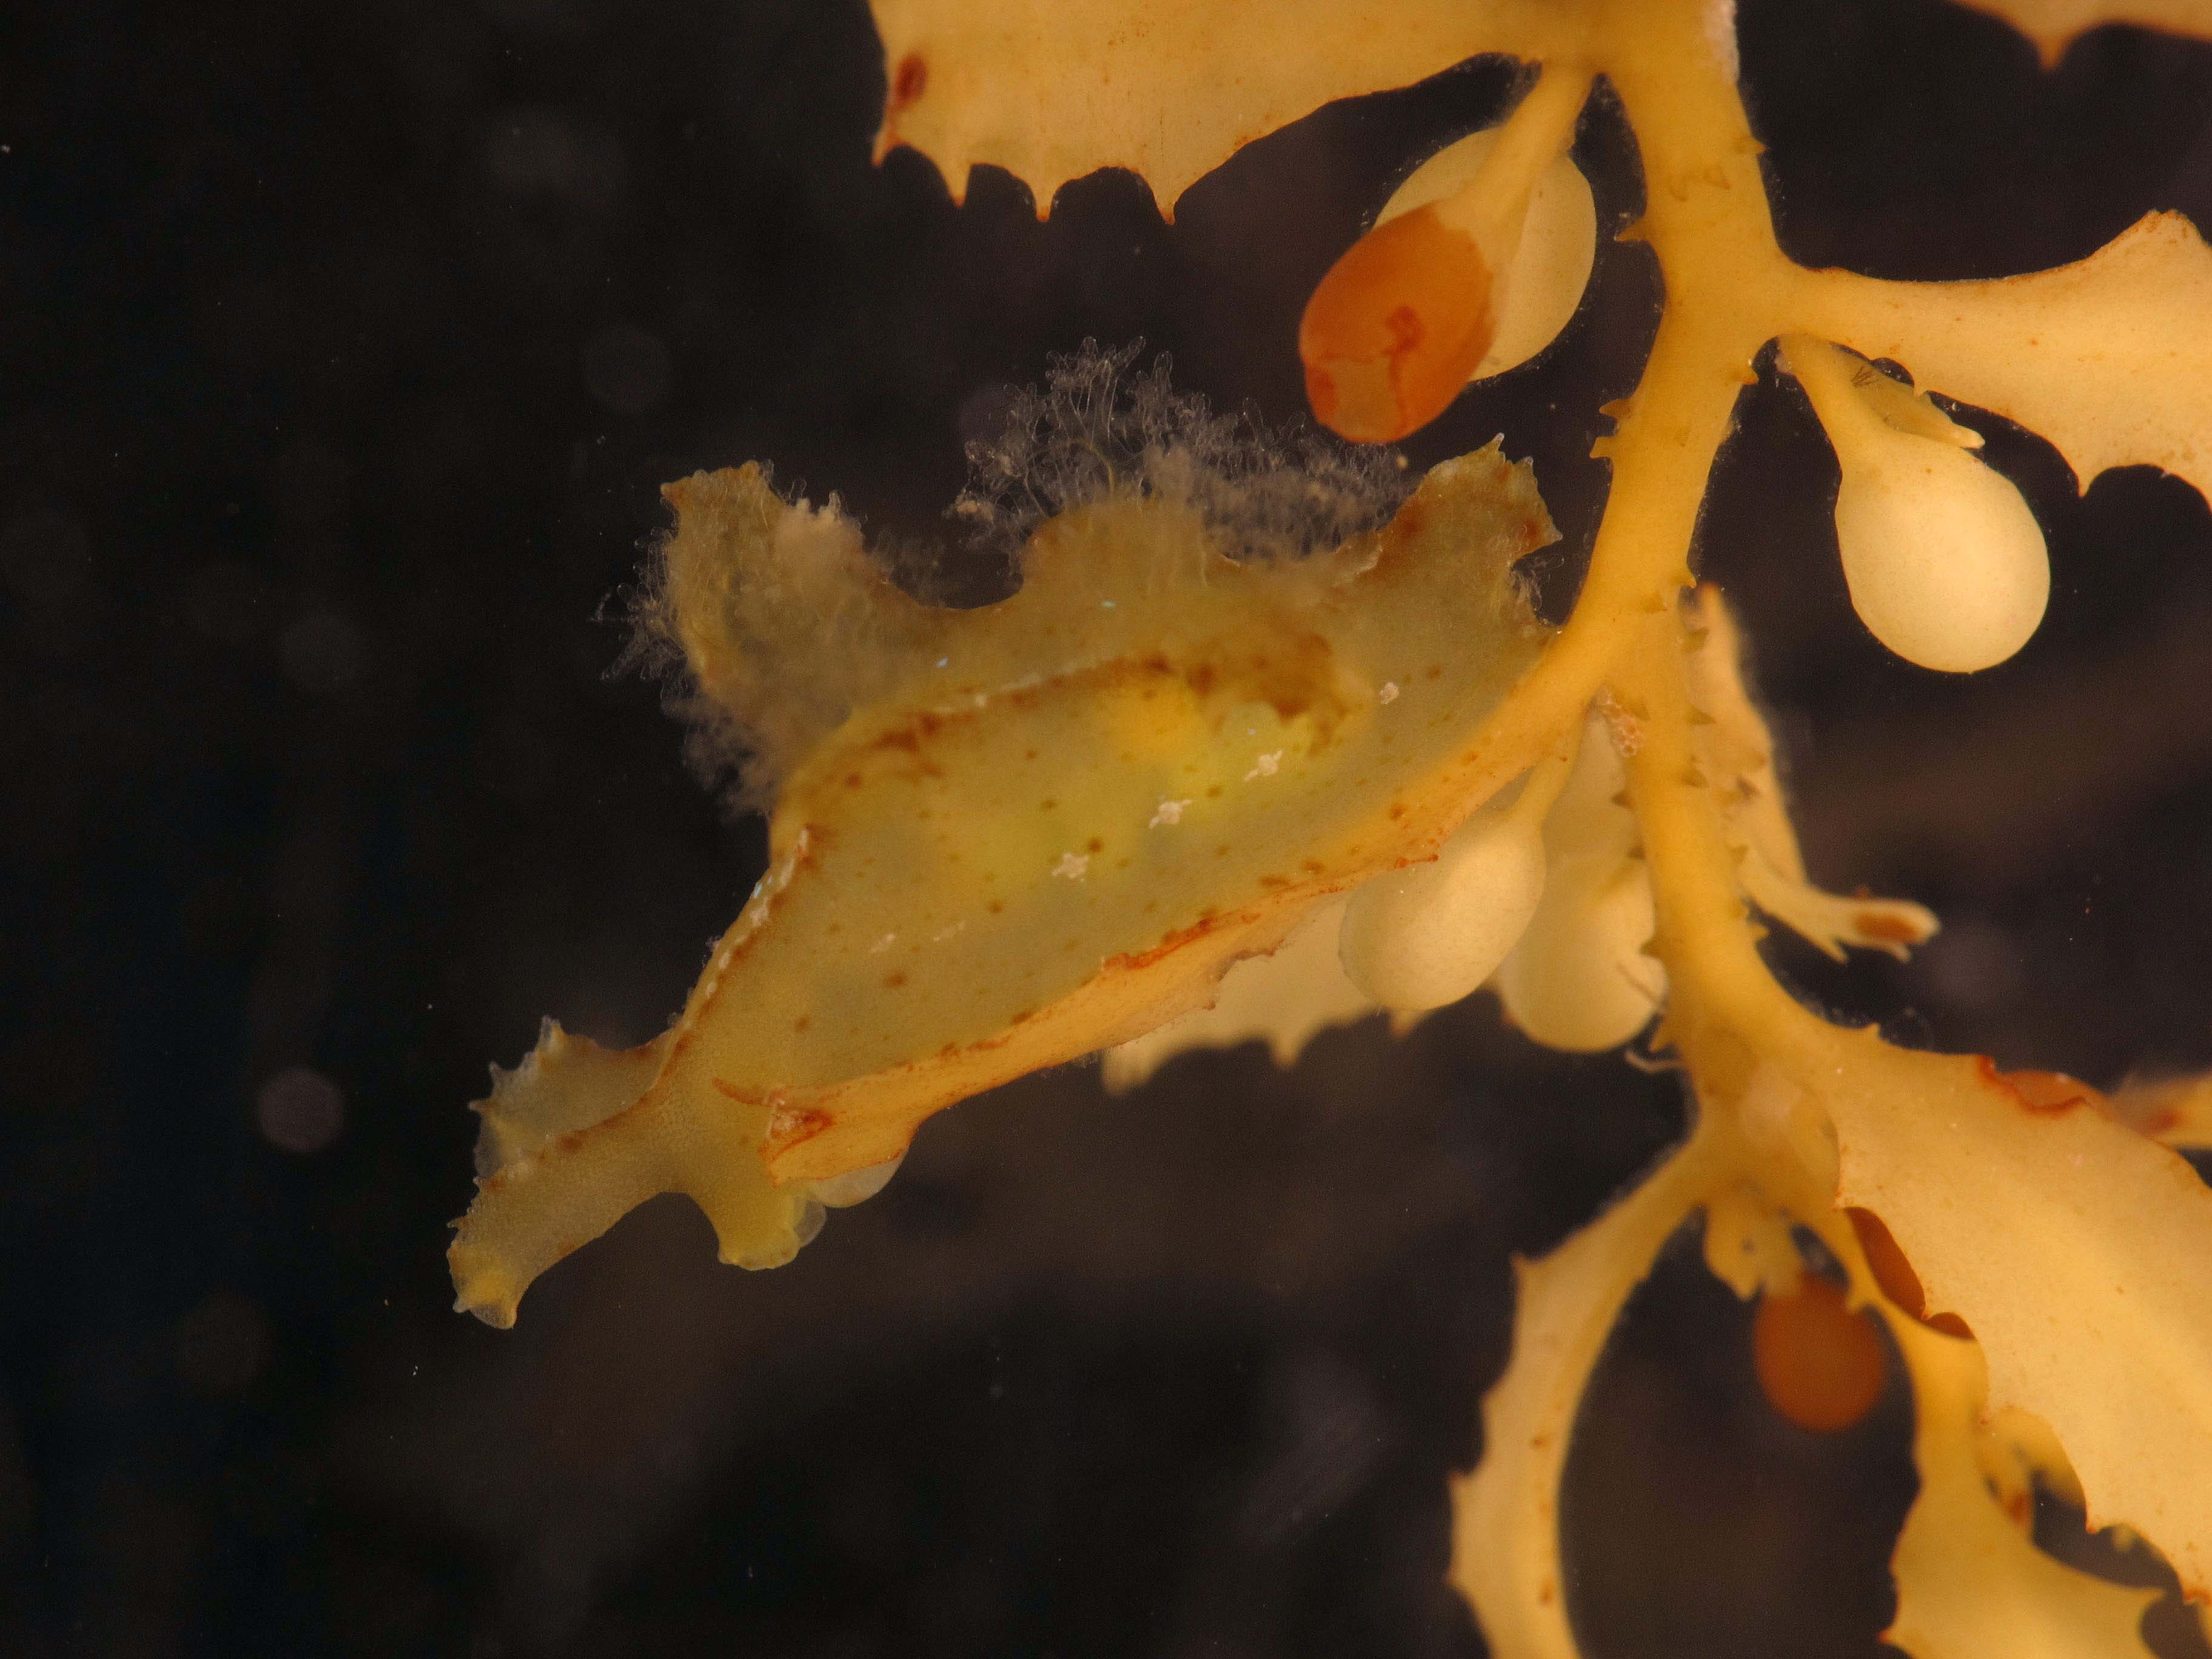 Winner of the 'best camoflauge' contest, the nudibranch Scyllaea pelagica is betrayed only by motion.<div class='credit'><strong>Credit:</strong> Winner of the 'best camoflauge' contest, the nudibranch Scyllaea pelagica is betrayed only by motion.</div>